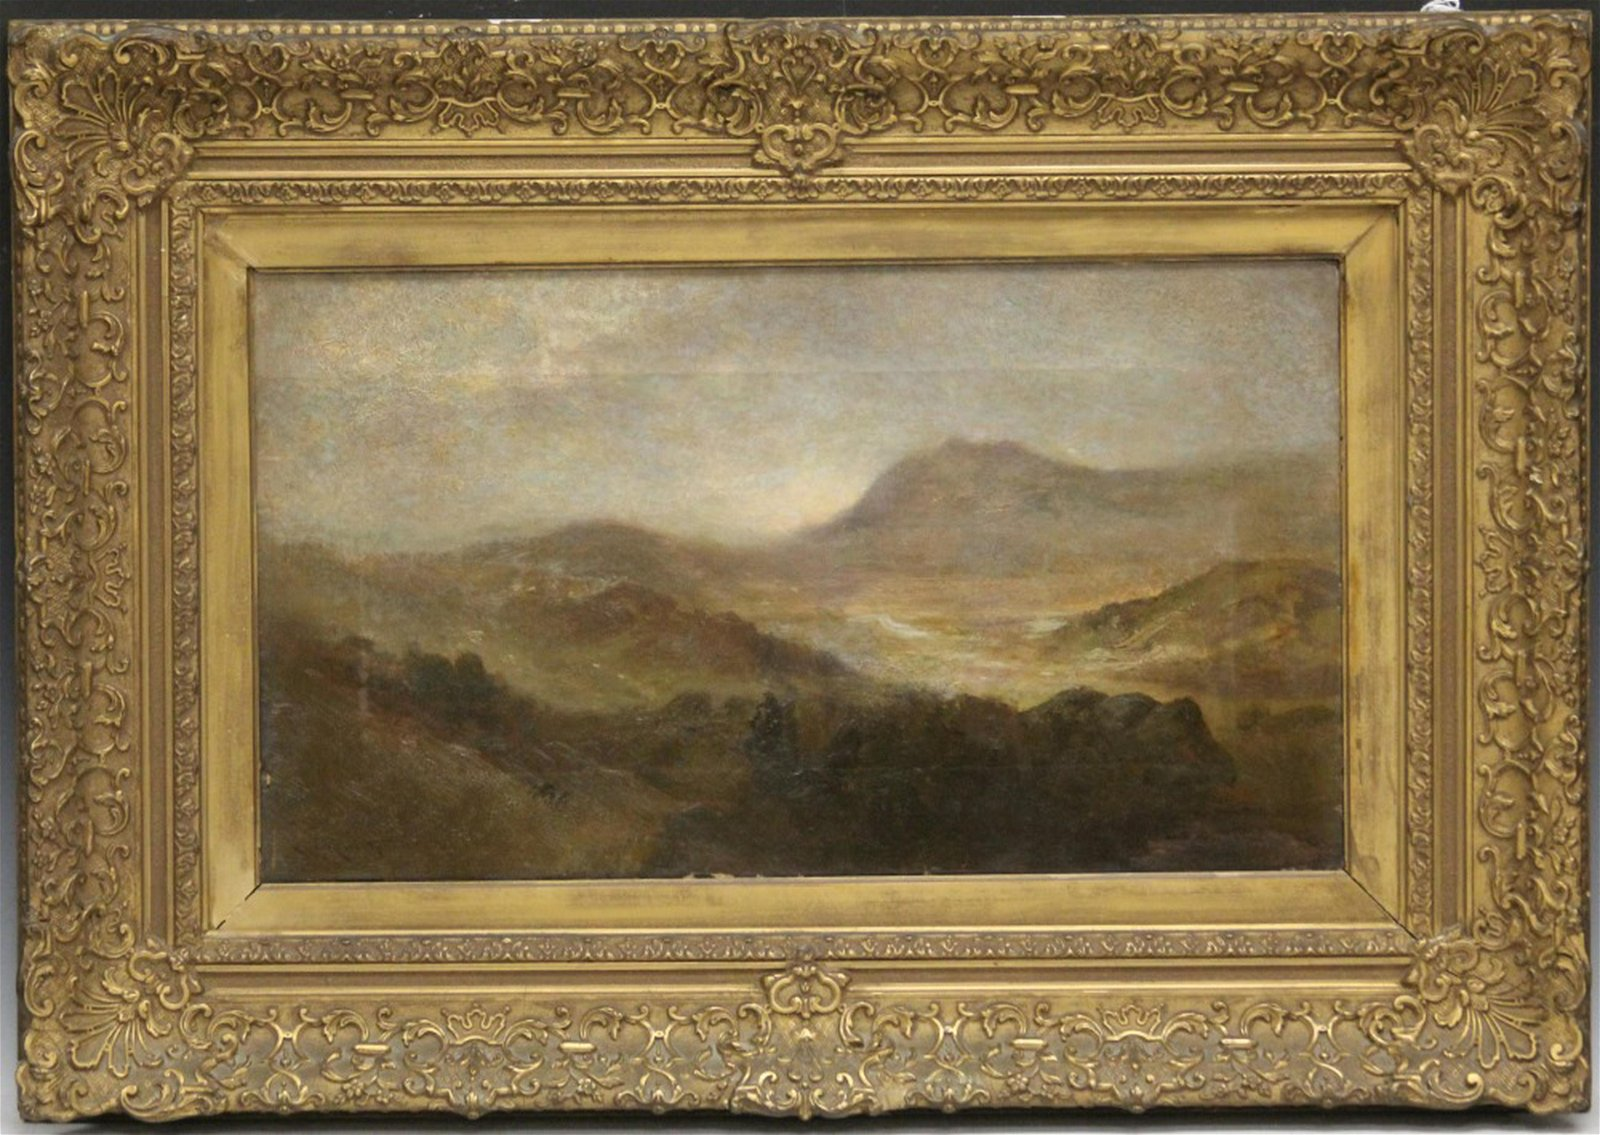 WILLIAM KEITH (1838-1911), OIL ON CANVAS, FRAMED